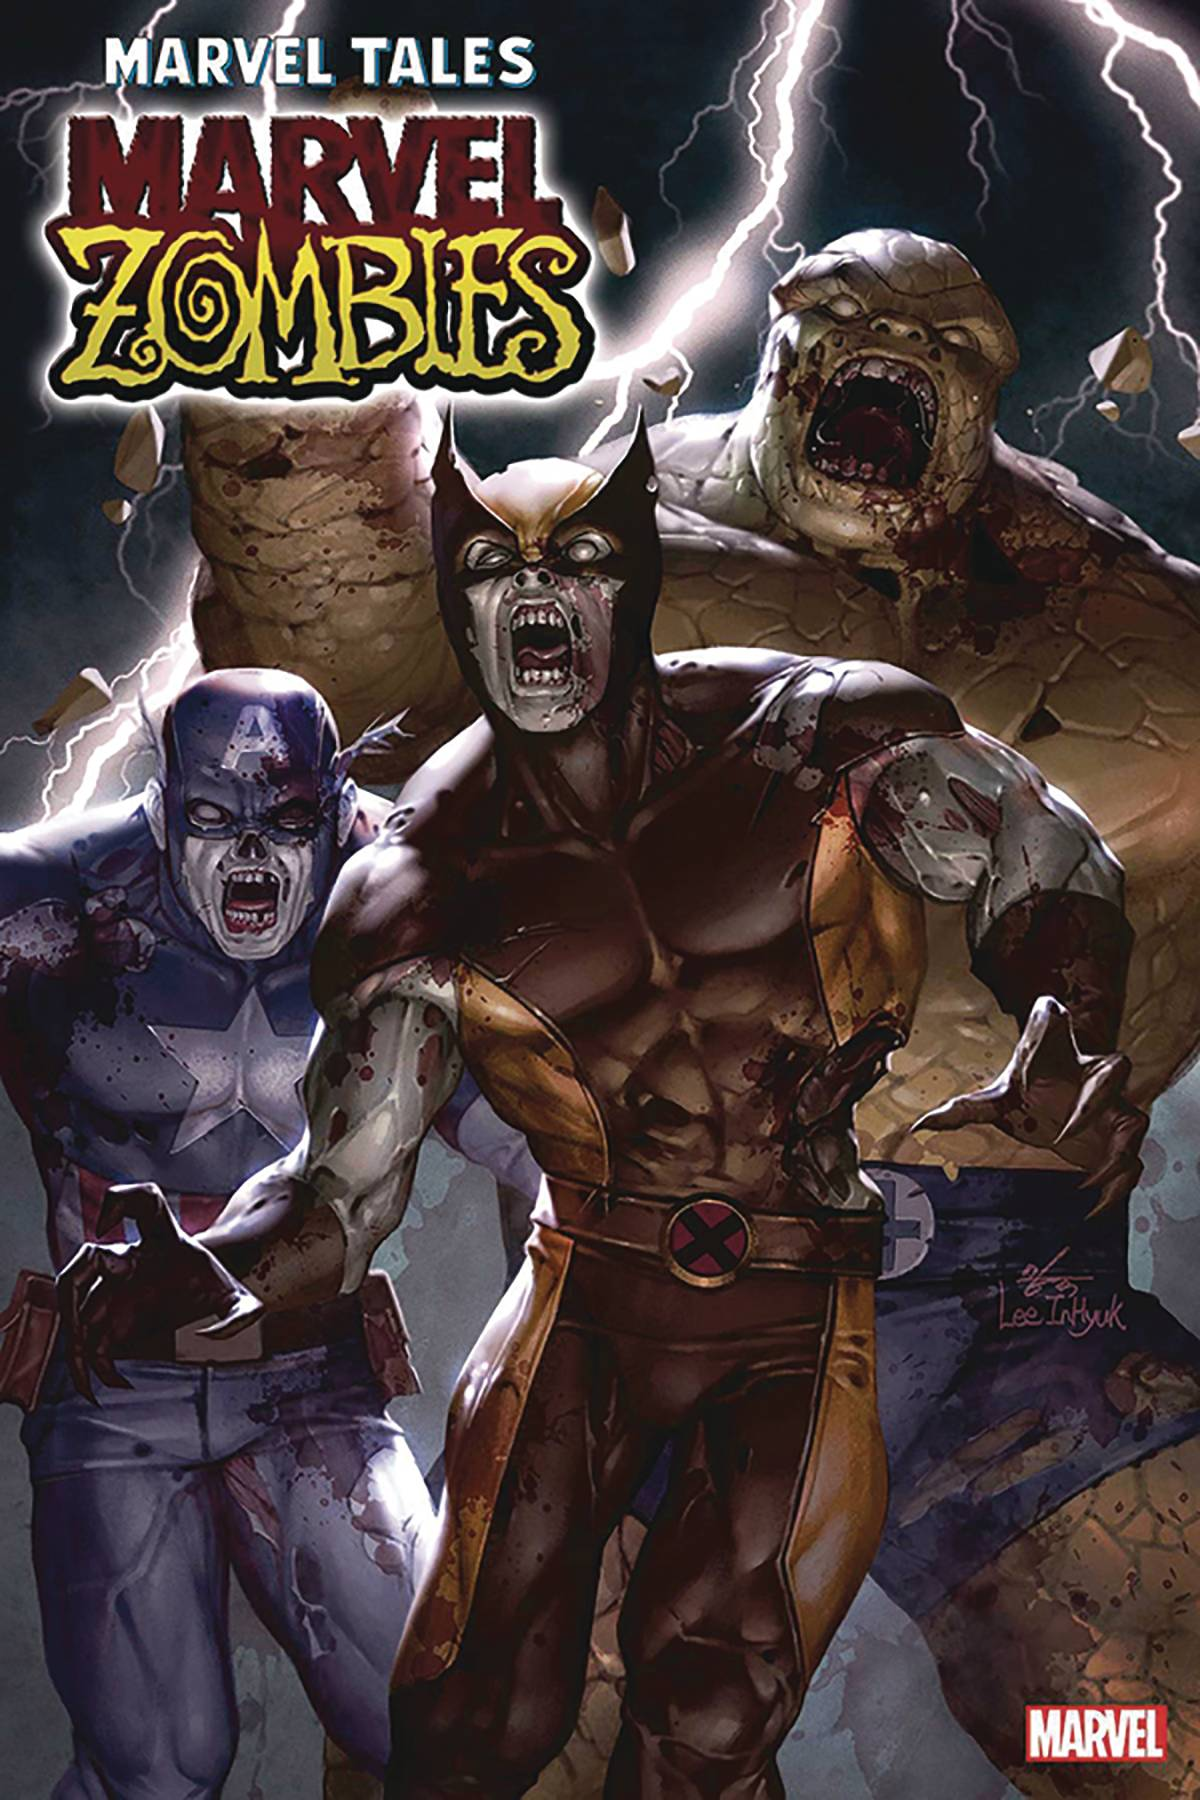 DF MARVEL TALES ORIGINAL MARVEL ZOMBIES #1 LAND SGN